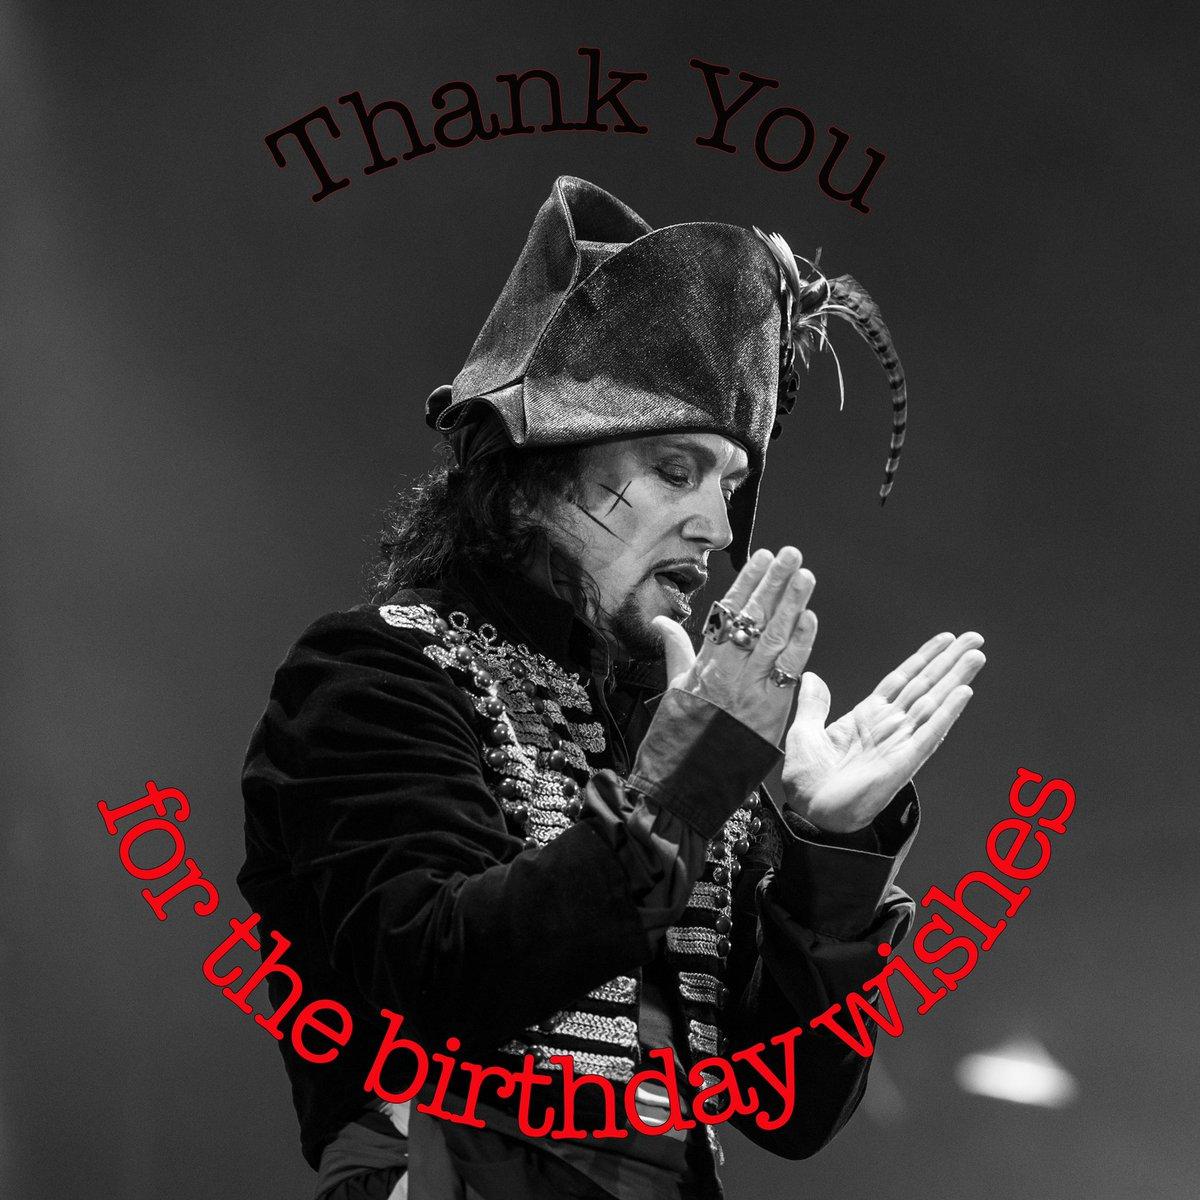 Replying to @adamaofficial: